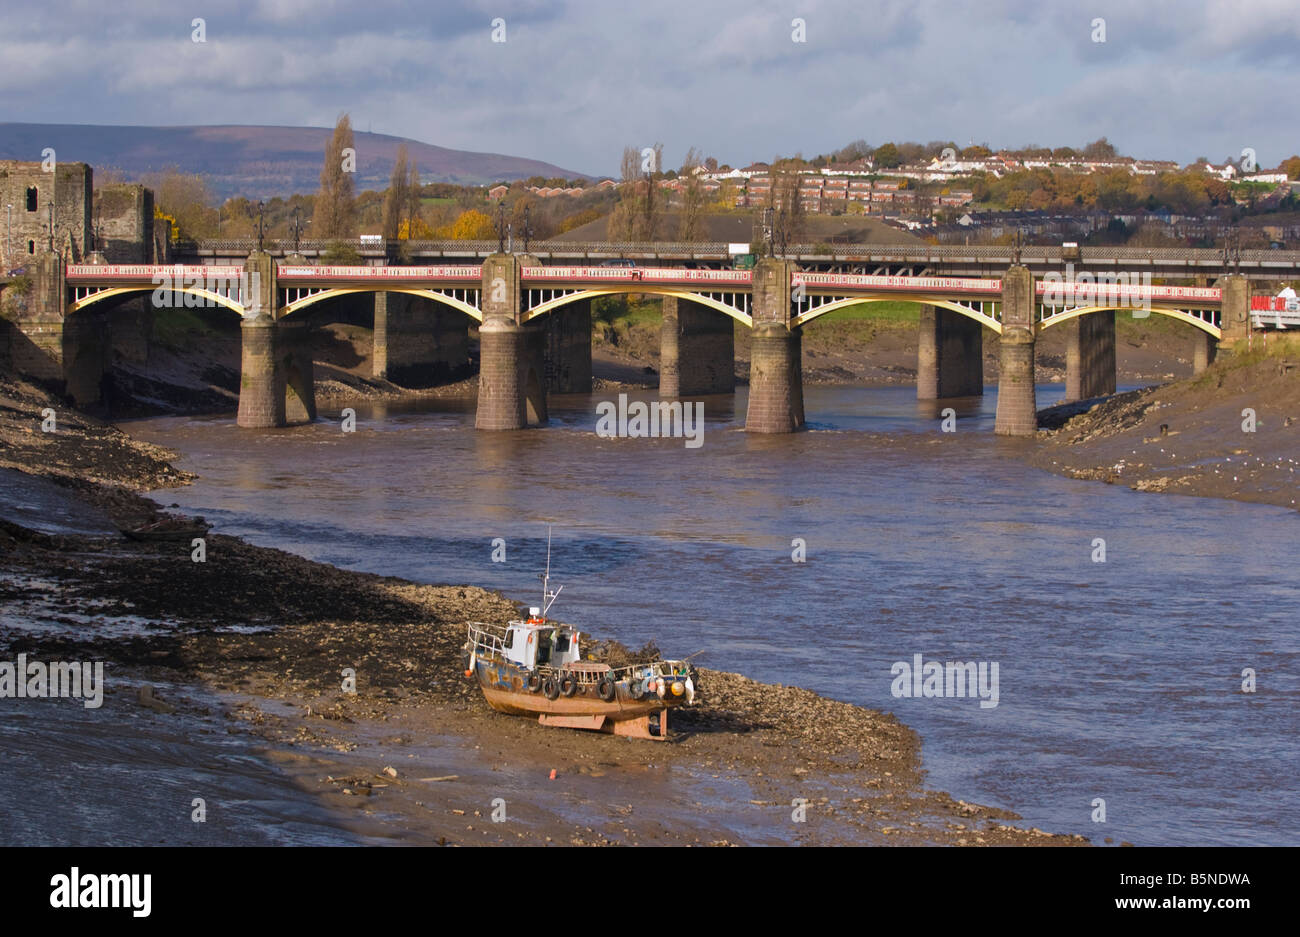 Small boat aground used for removing rubbish from the mud of the tidal River Usk in Newport city centre South Wales - Stock Image